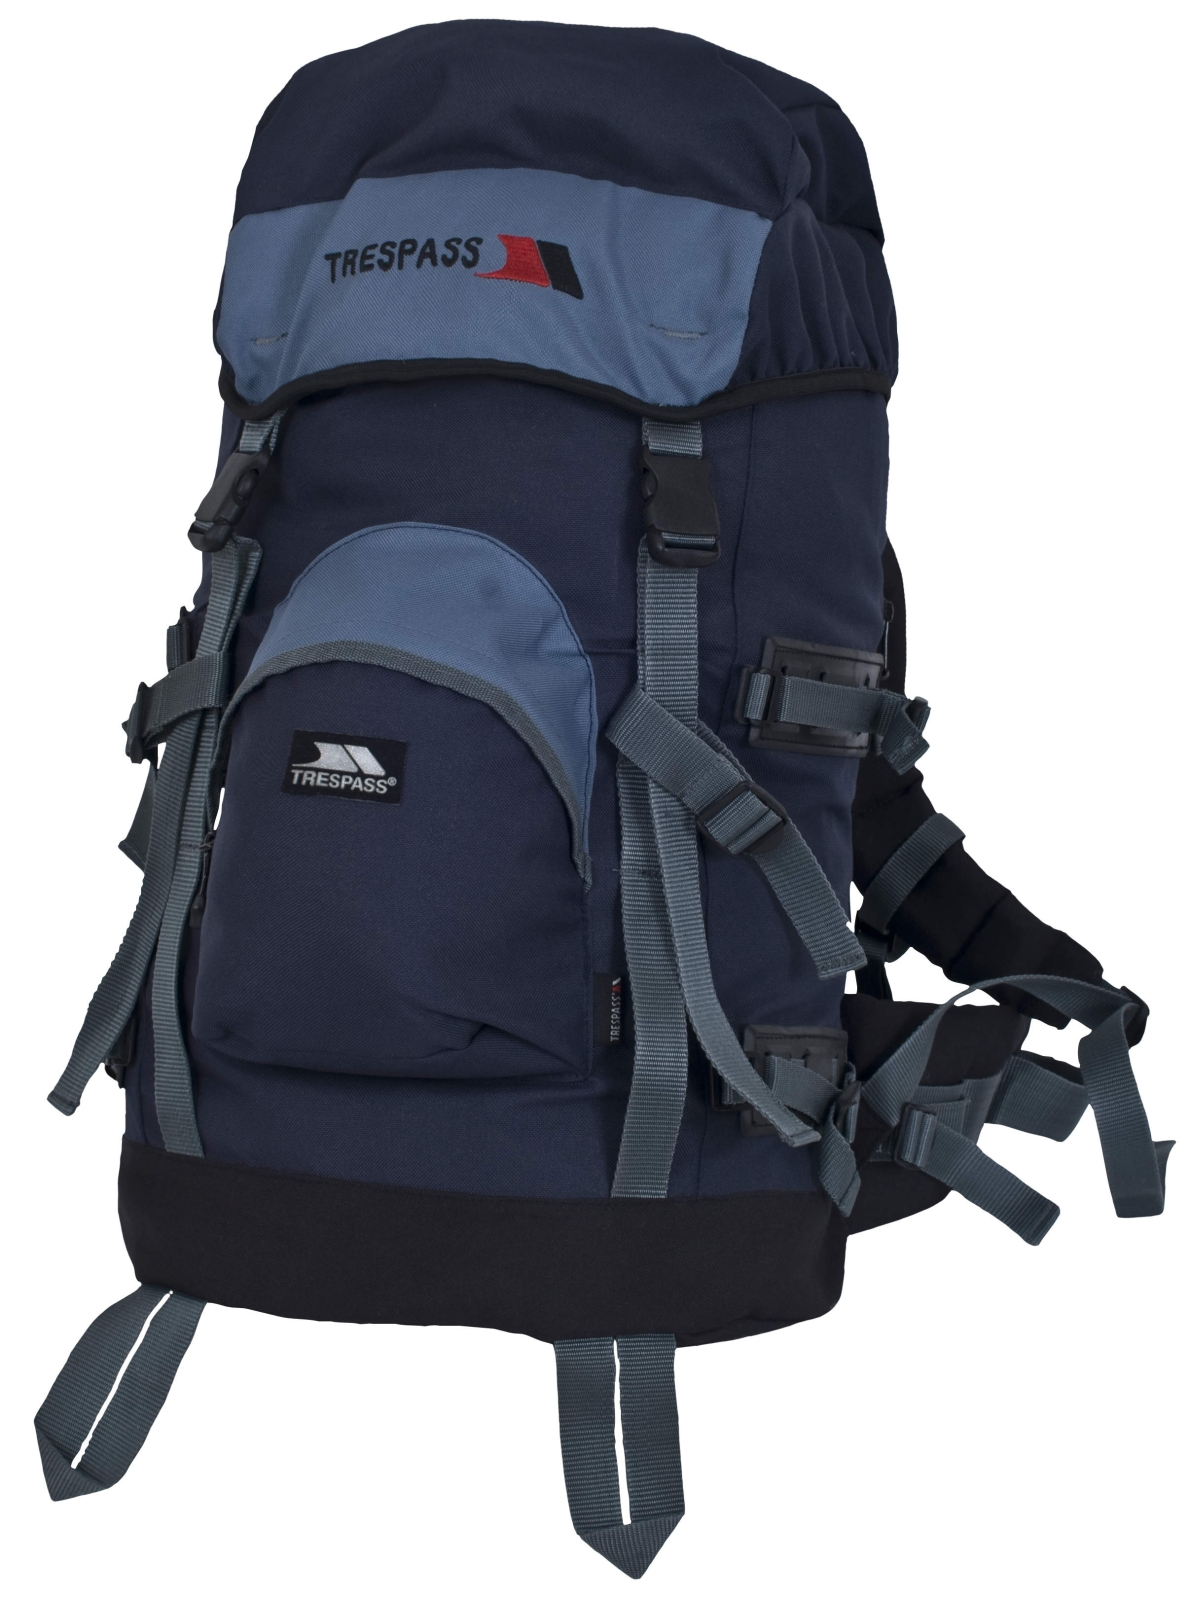 trespass harket x 35 litre rucksack camping backpack bag waterproof cover blue ebay. Black Bedroom Furniture Sets. Home Design Ideas